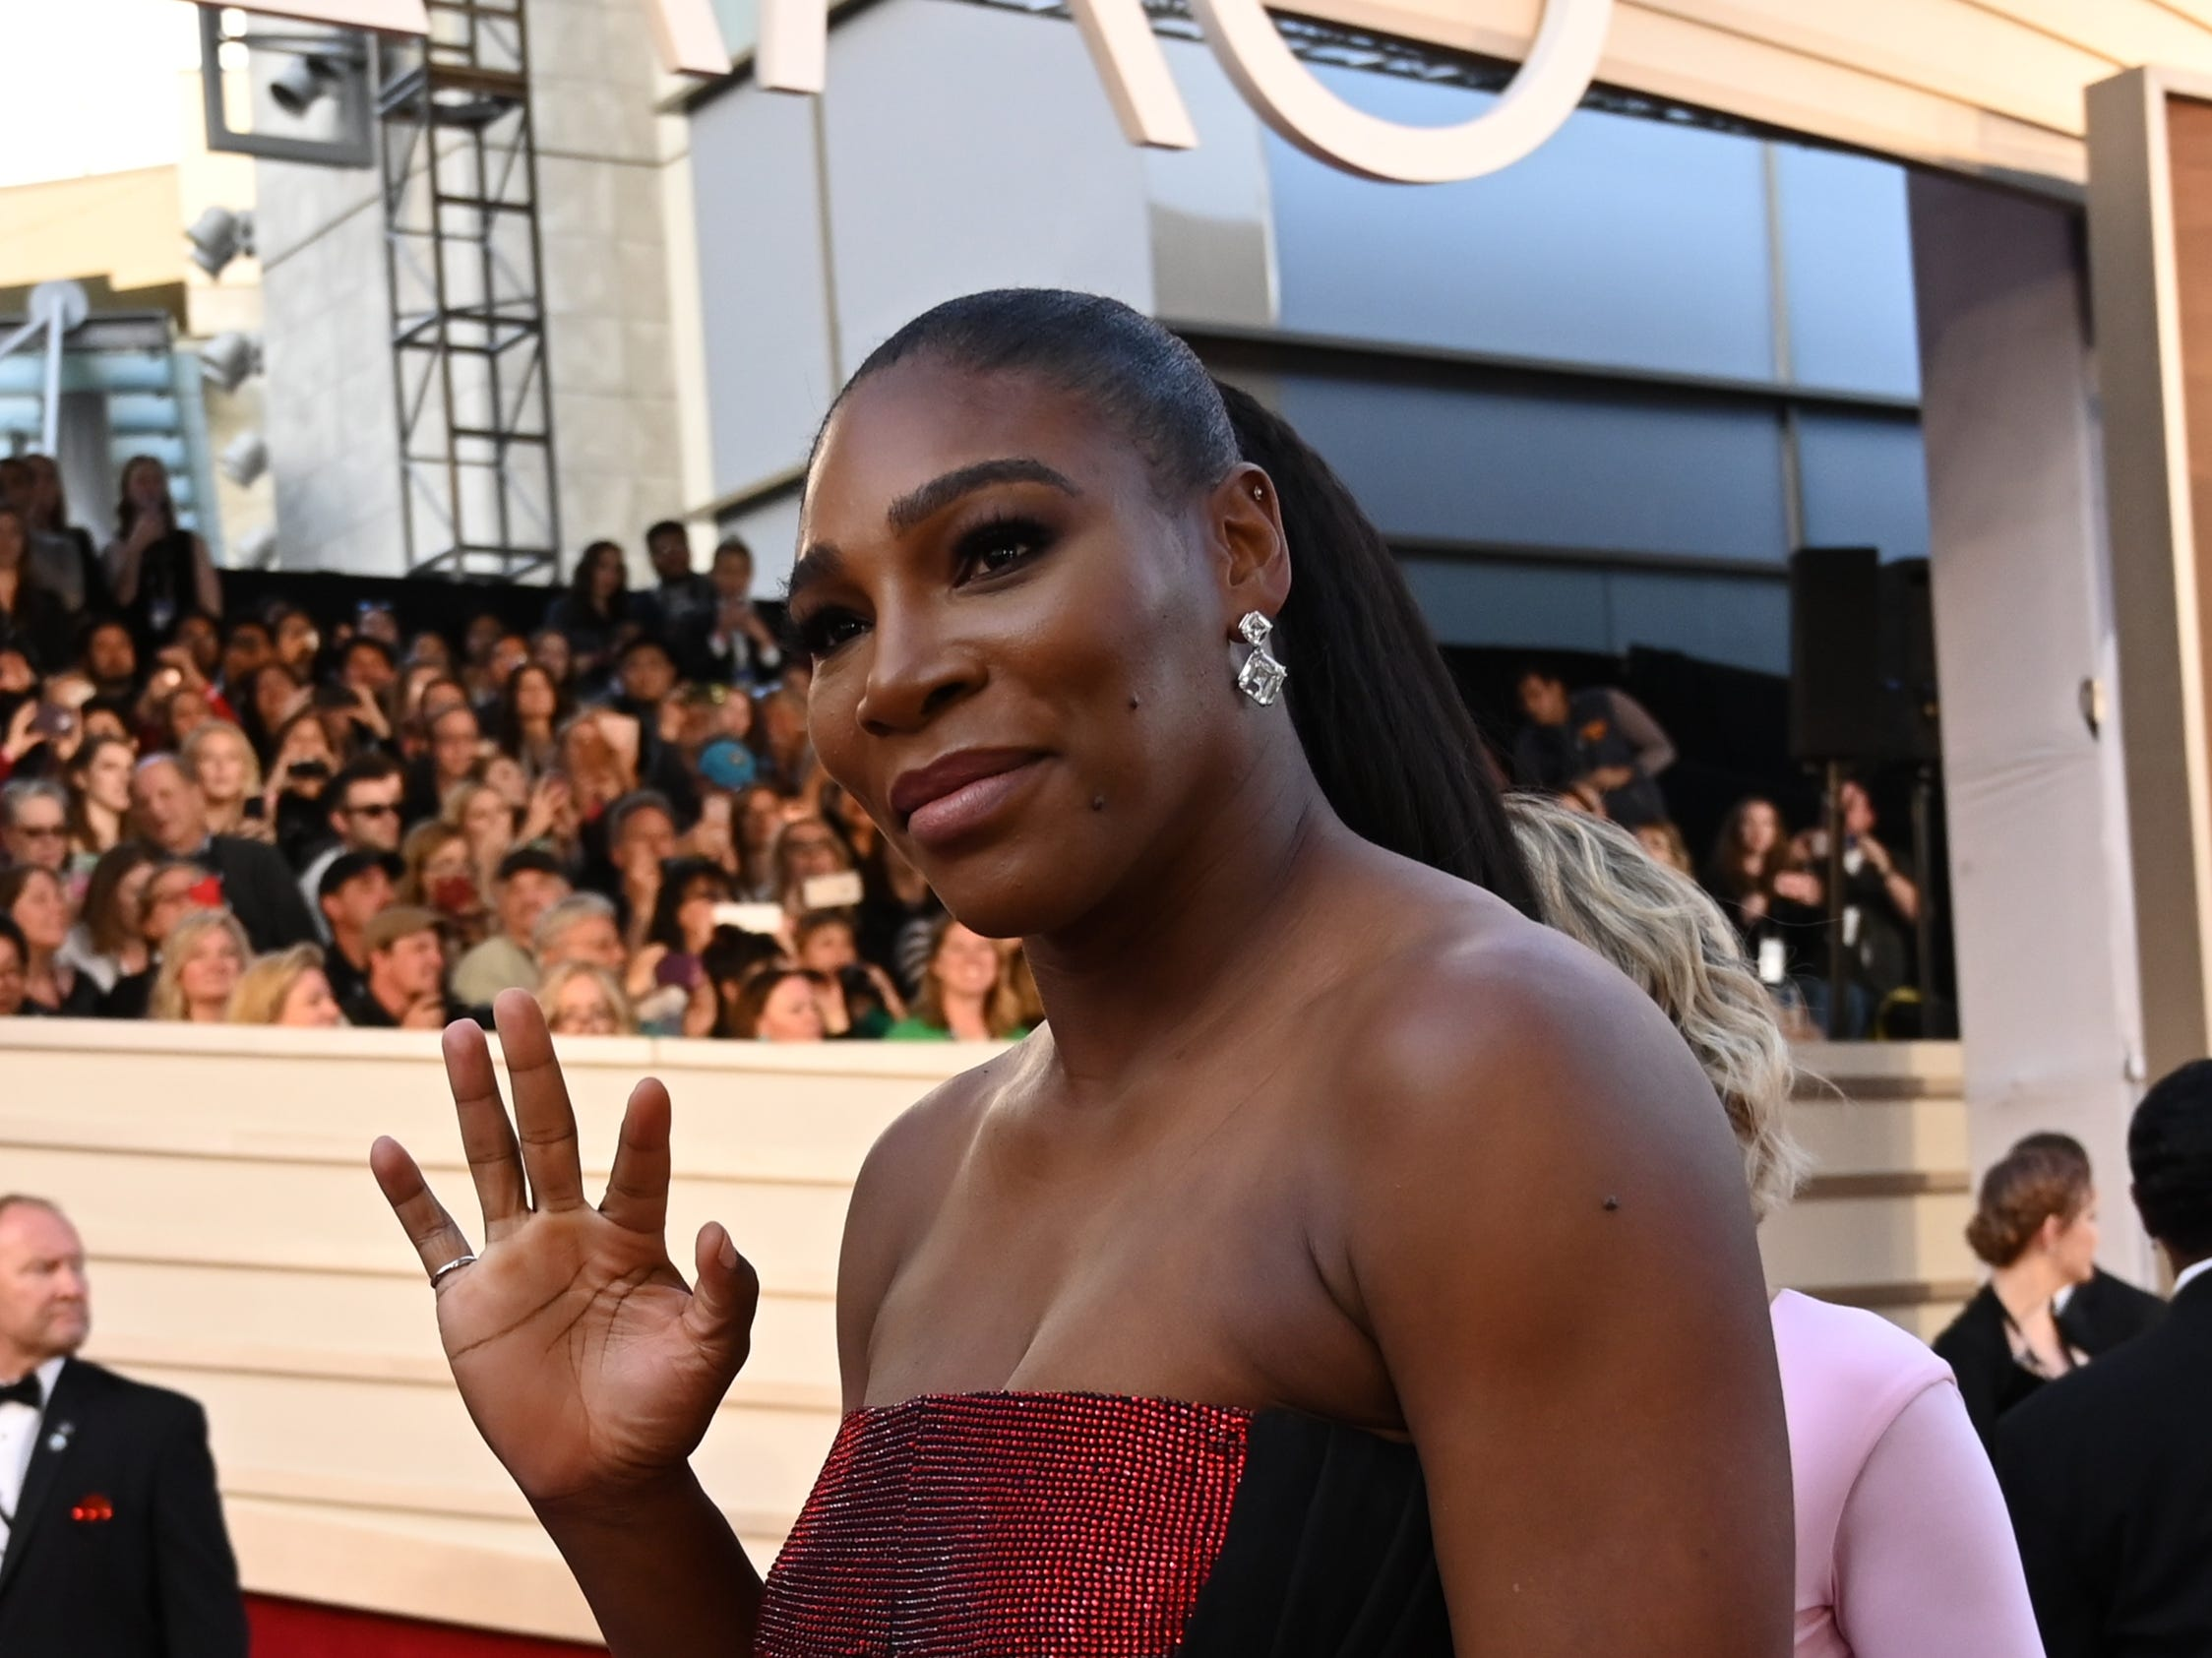 February 24, 2019; Los Angeles, CA, USA; Serena Williams arrives at the 91st Academy Awards at the Dolby Theatre. Mandatory Credit: Robert Hanashiro-USA TODAY NETWORK (Via OlyDrop)